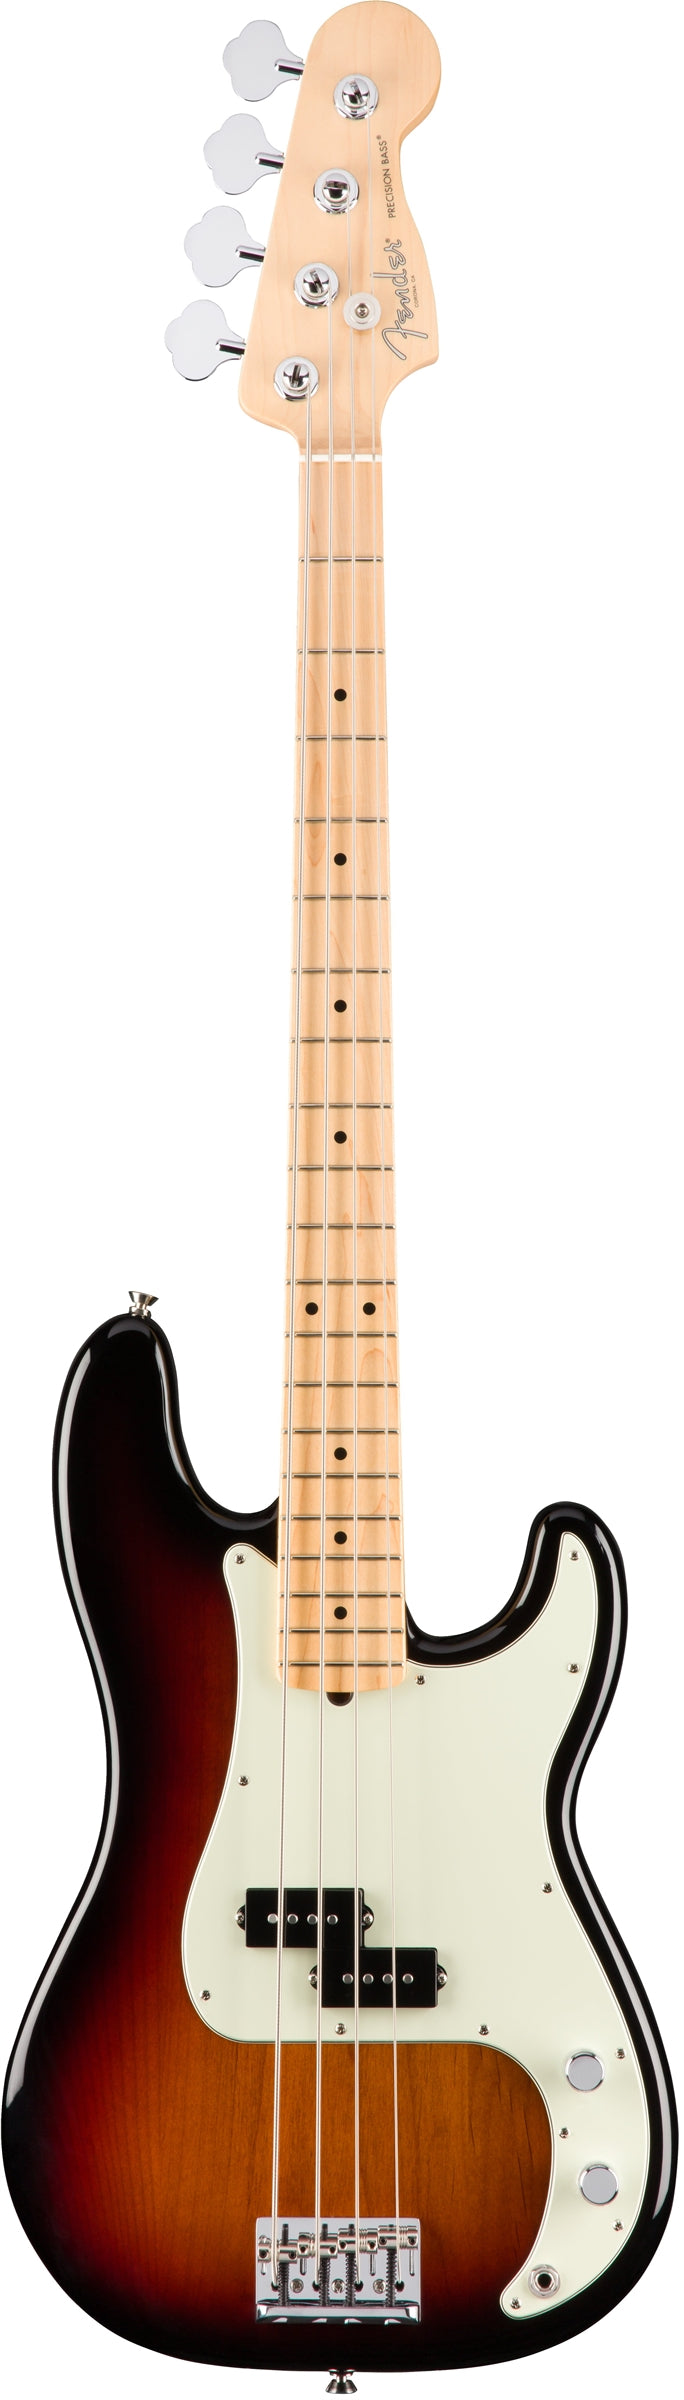 Fender American Professional Precision Bass - Maple Fingerboard